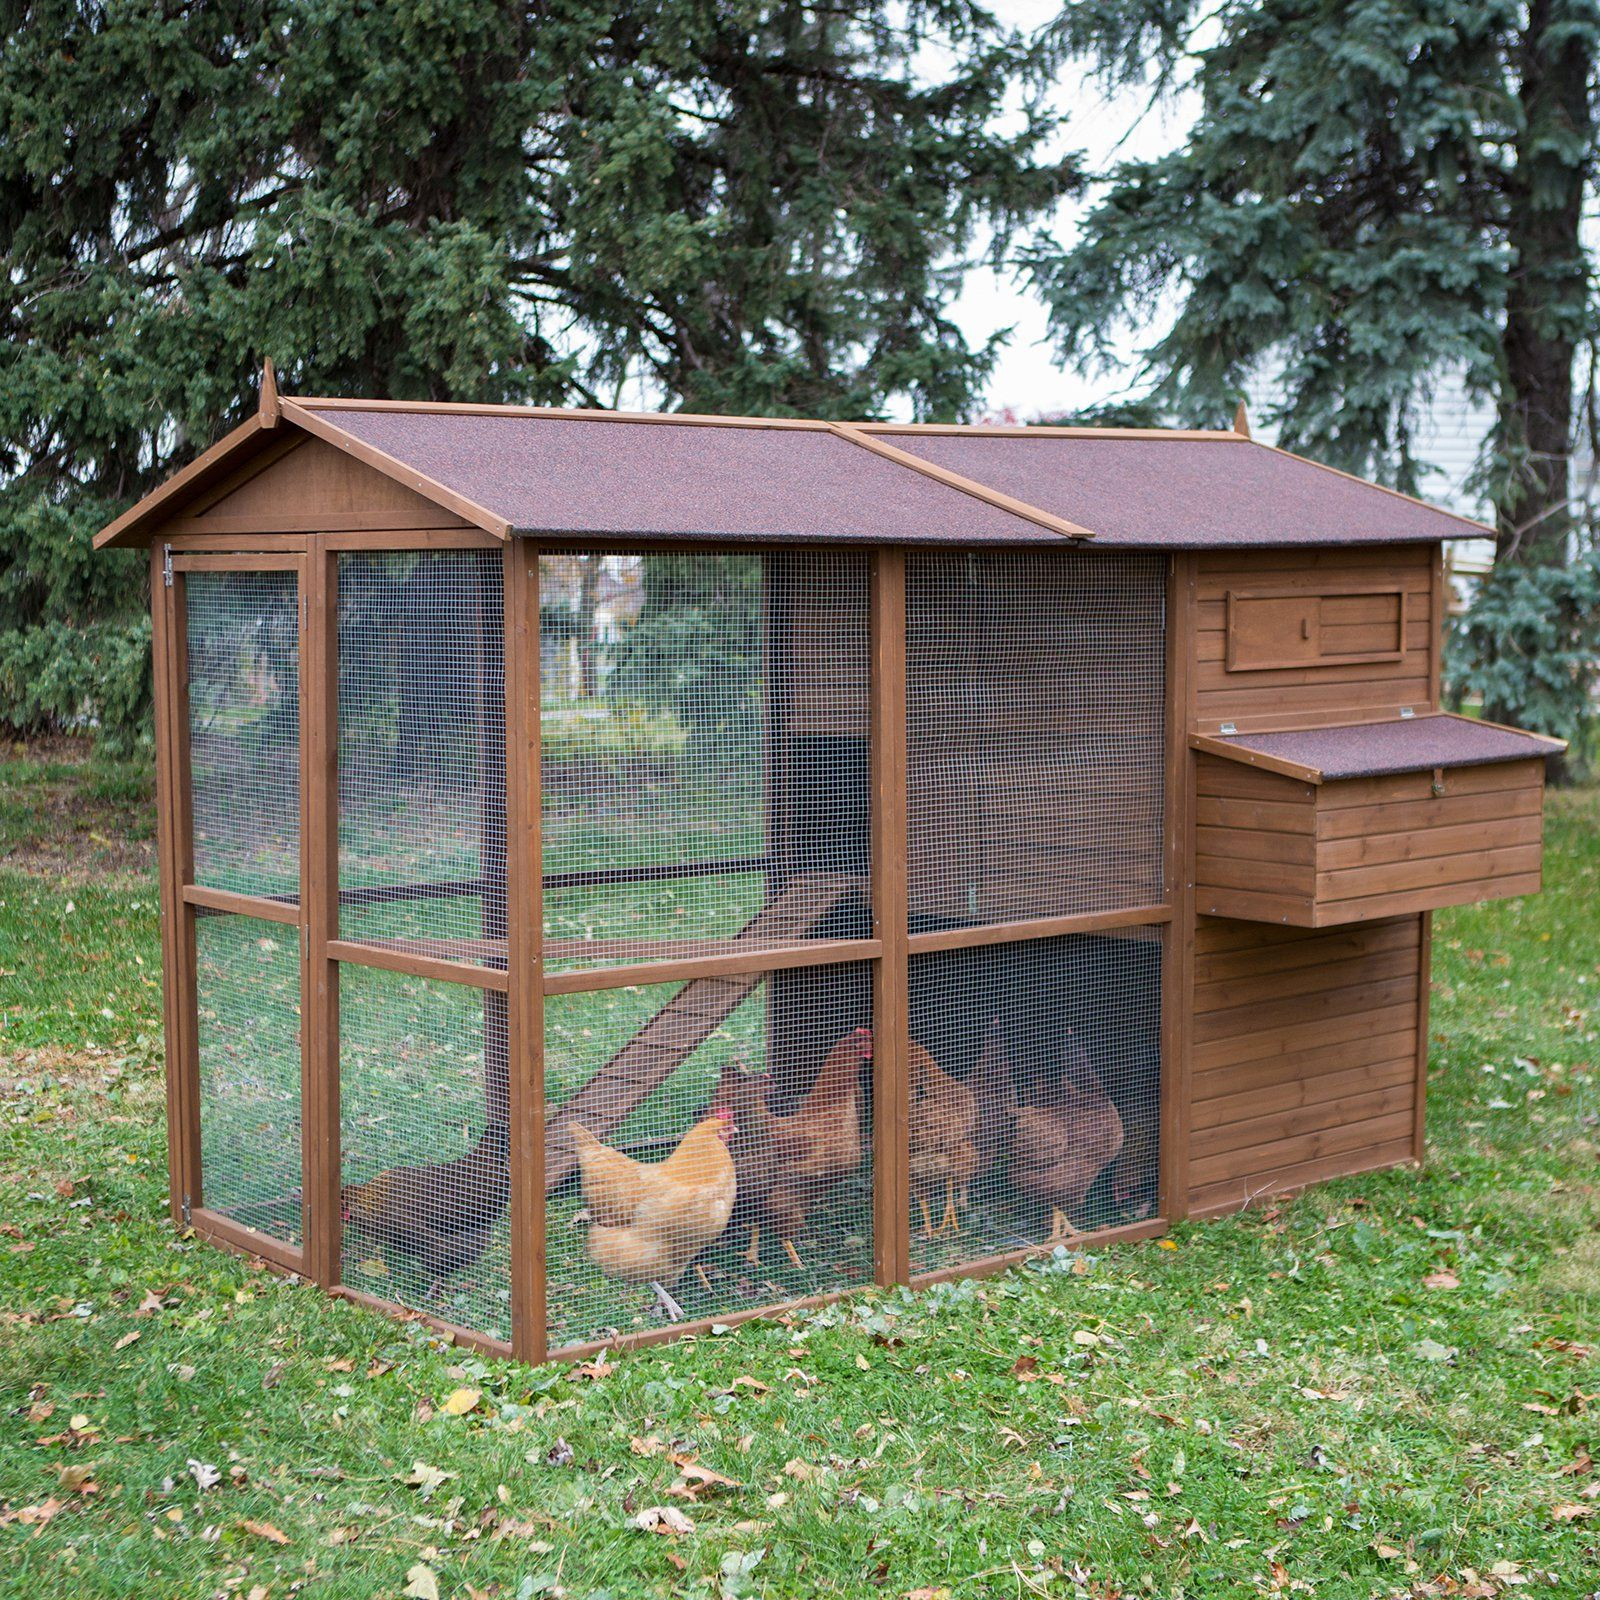 Boomer Amp George Large Poultry Palace Chicken Coop